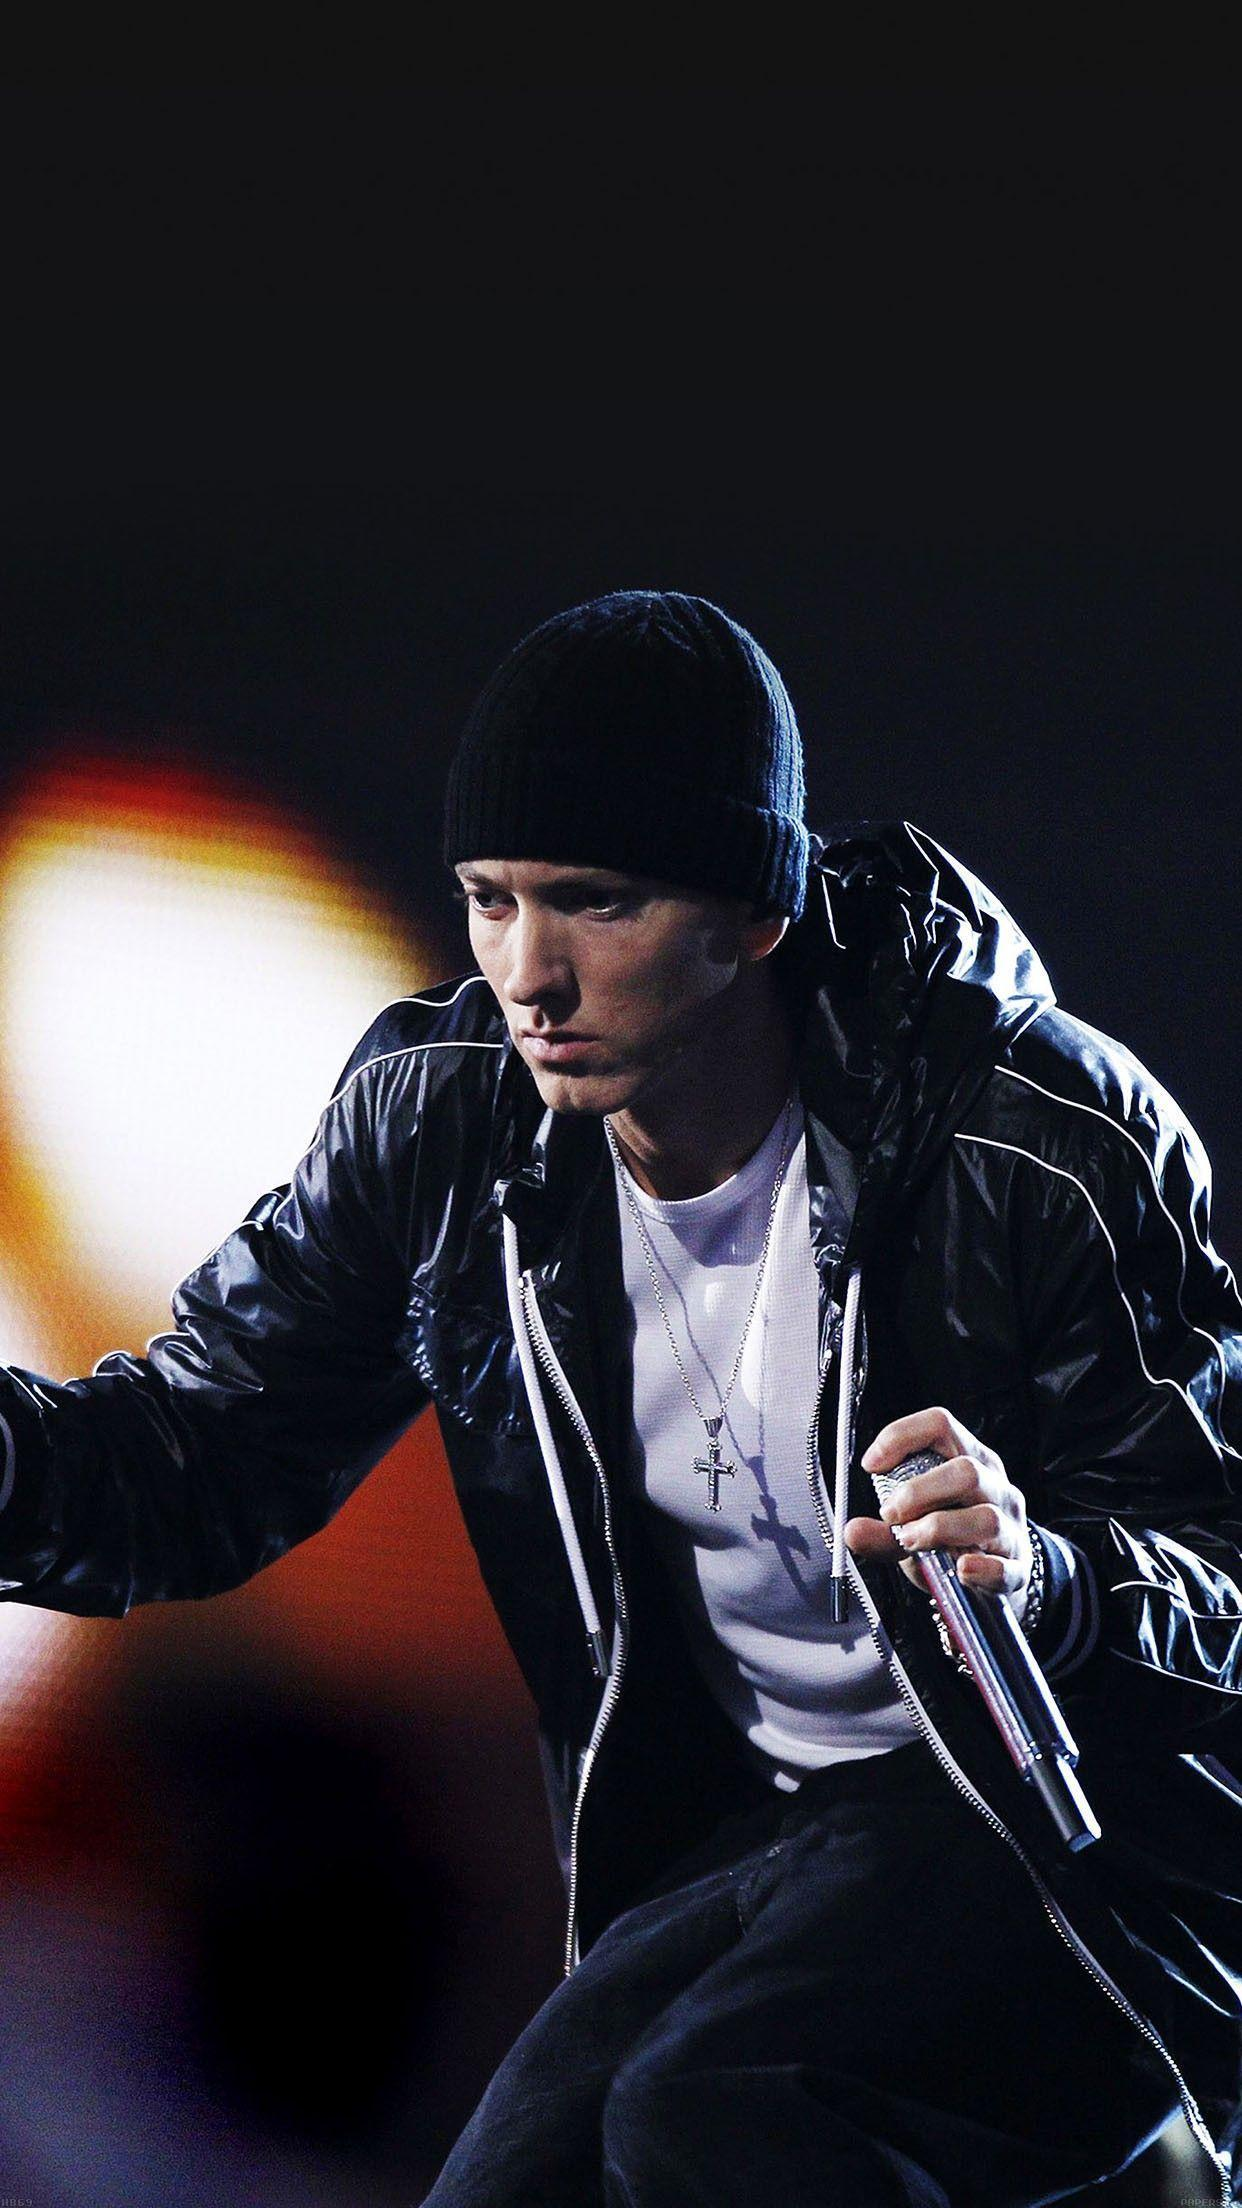 Eminem 2017 Wallpapers - Wallpaper Cave